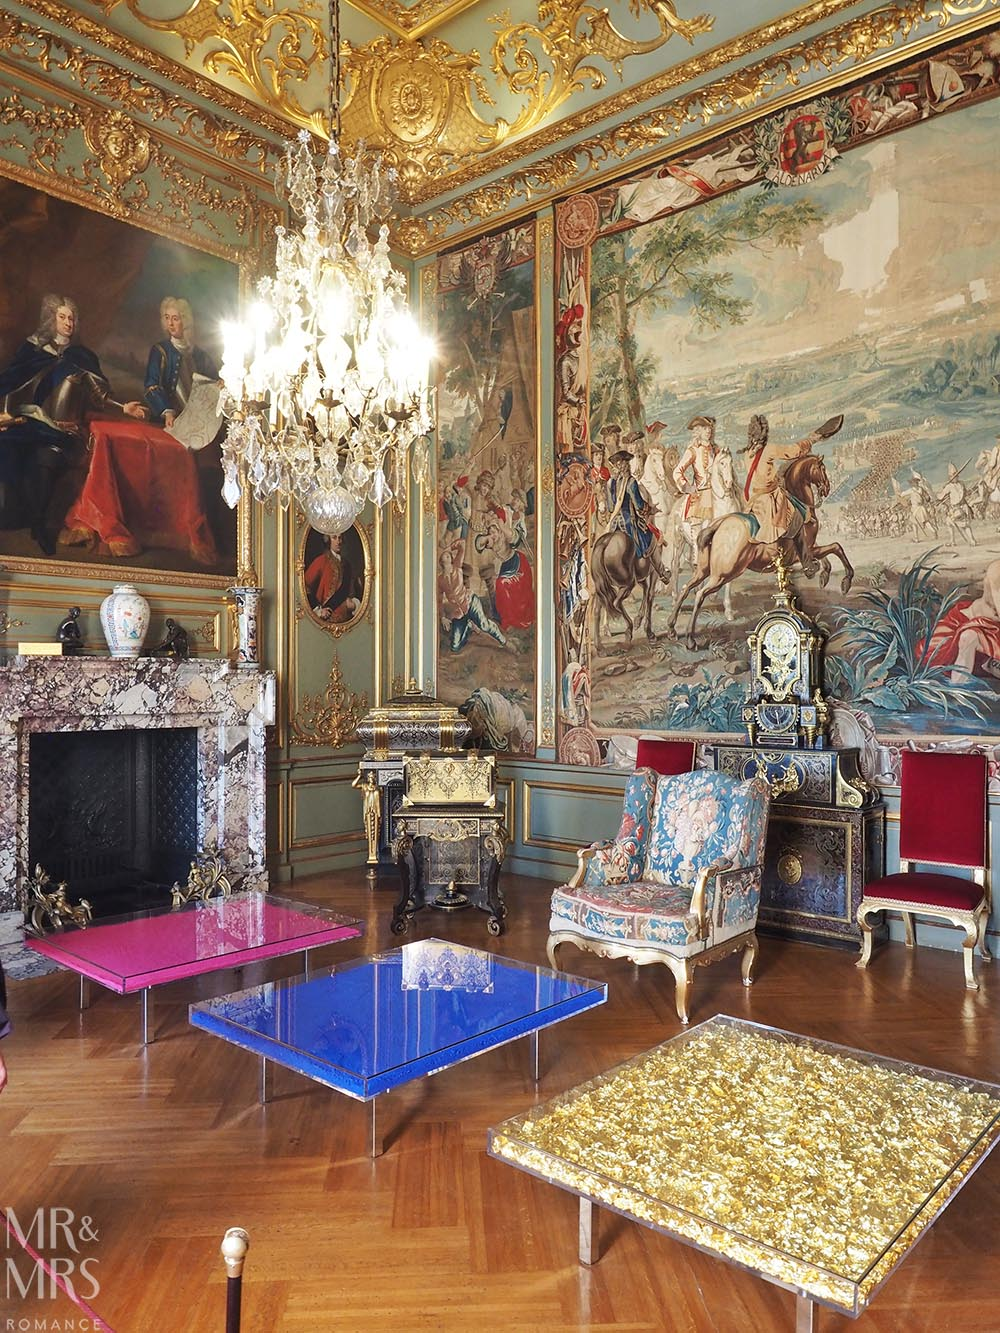 Reception rooms at Blenheim Palace England